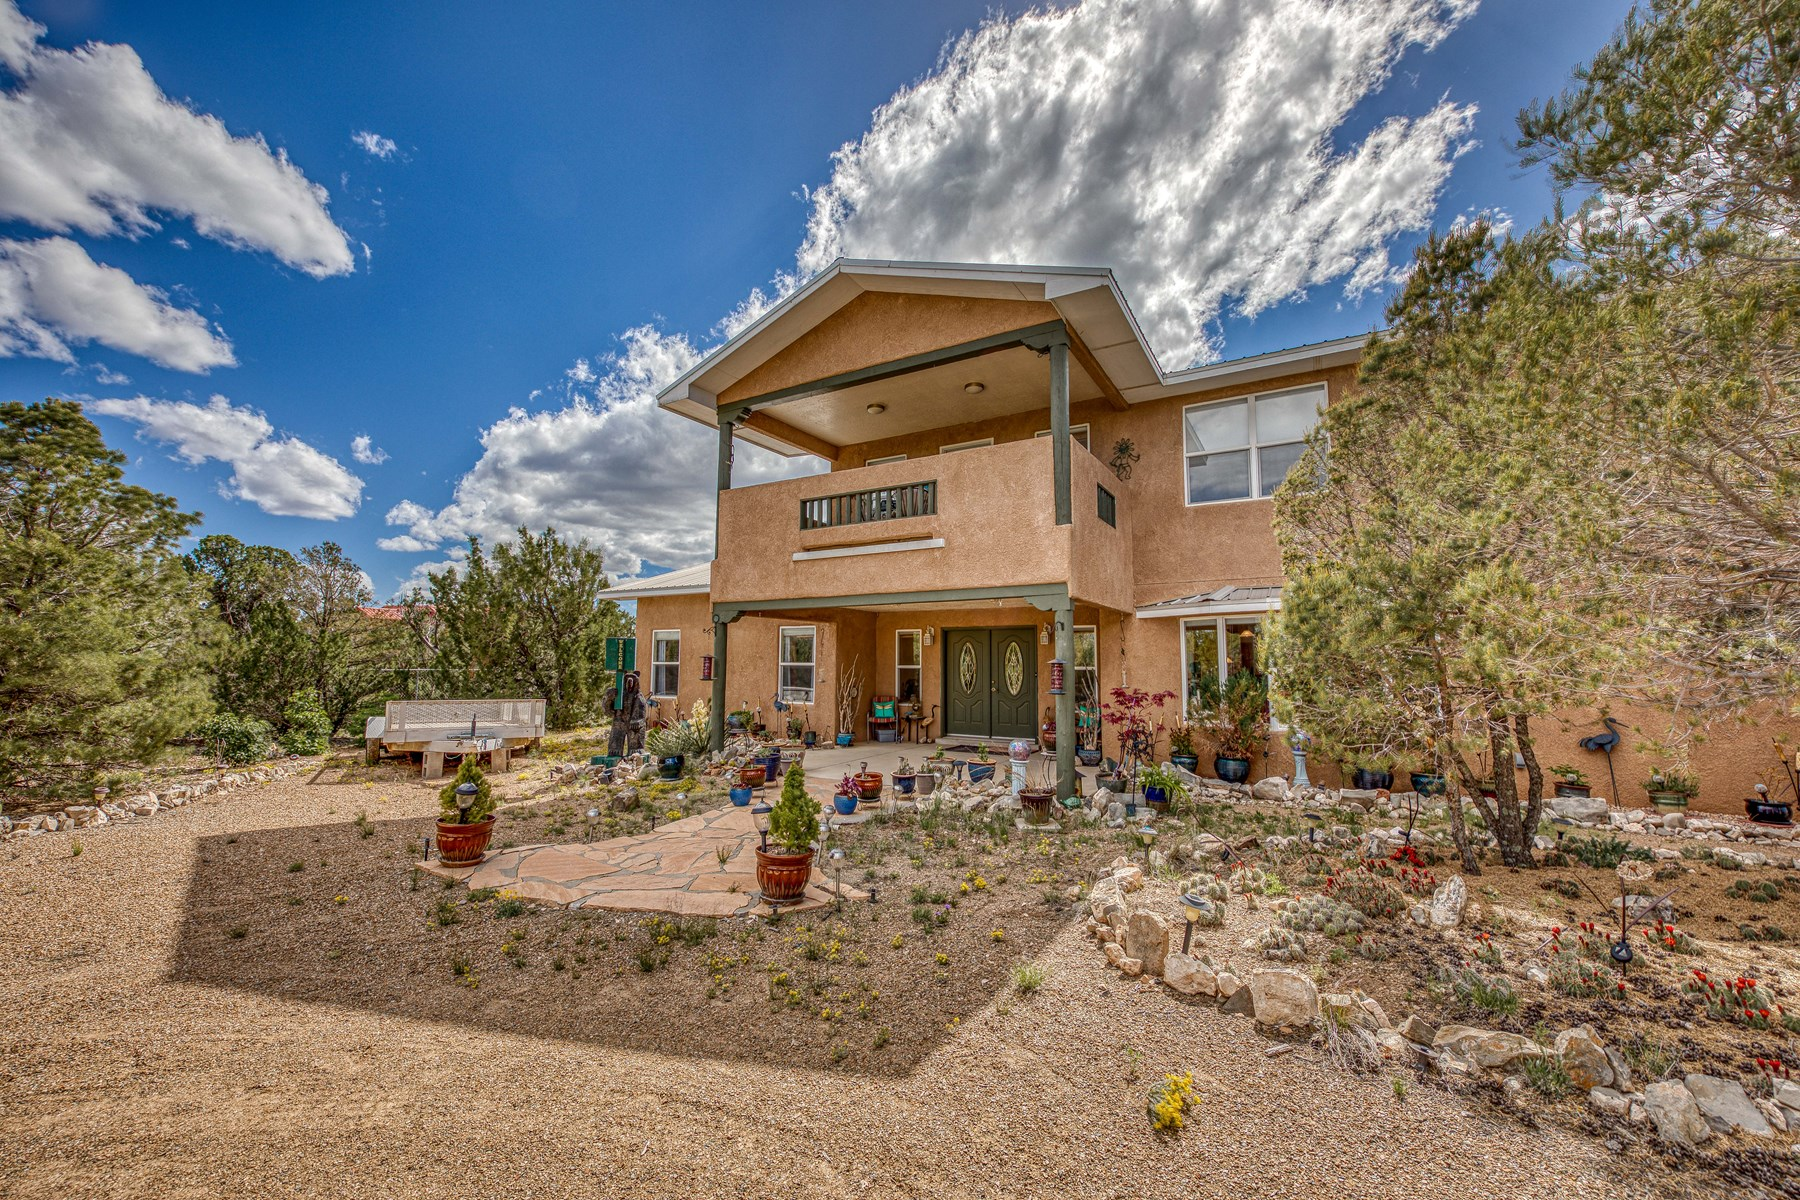 Edgewood NM 2970 SF Home on 2.25 Acres For Sale